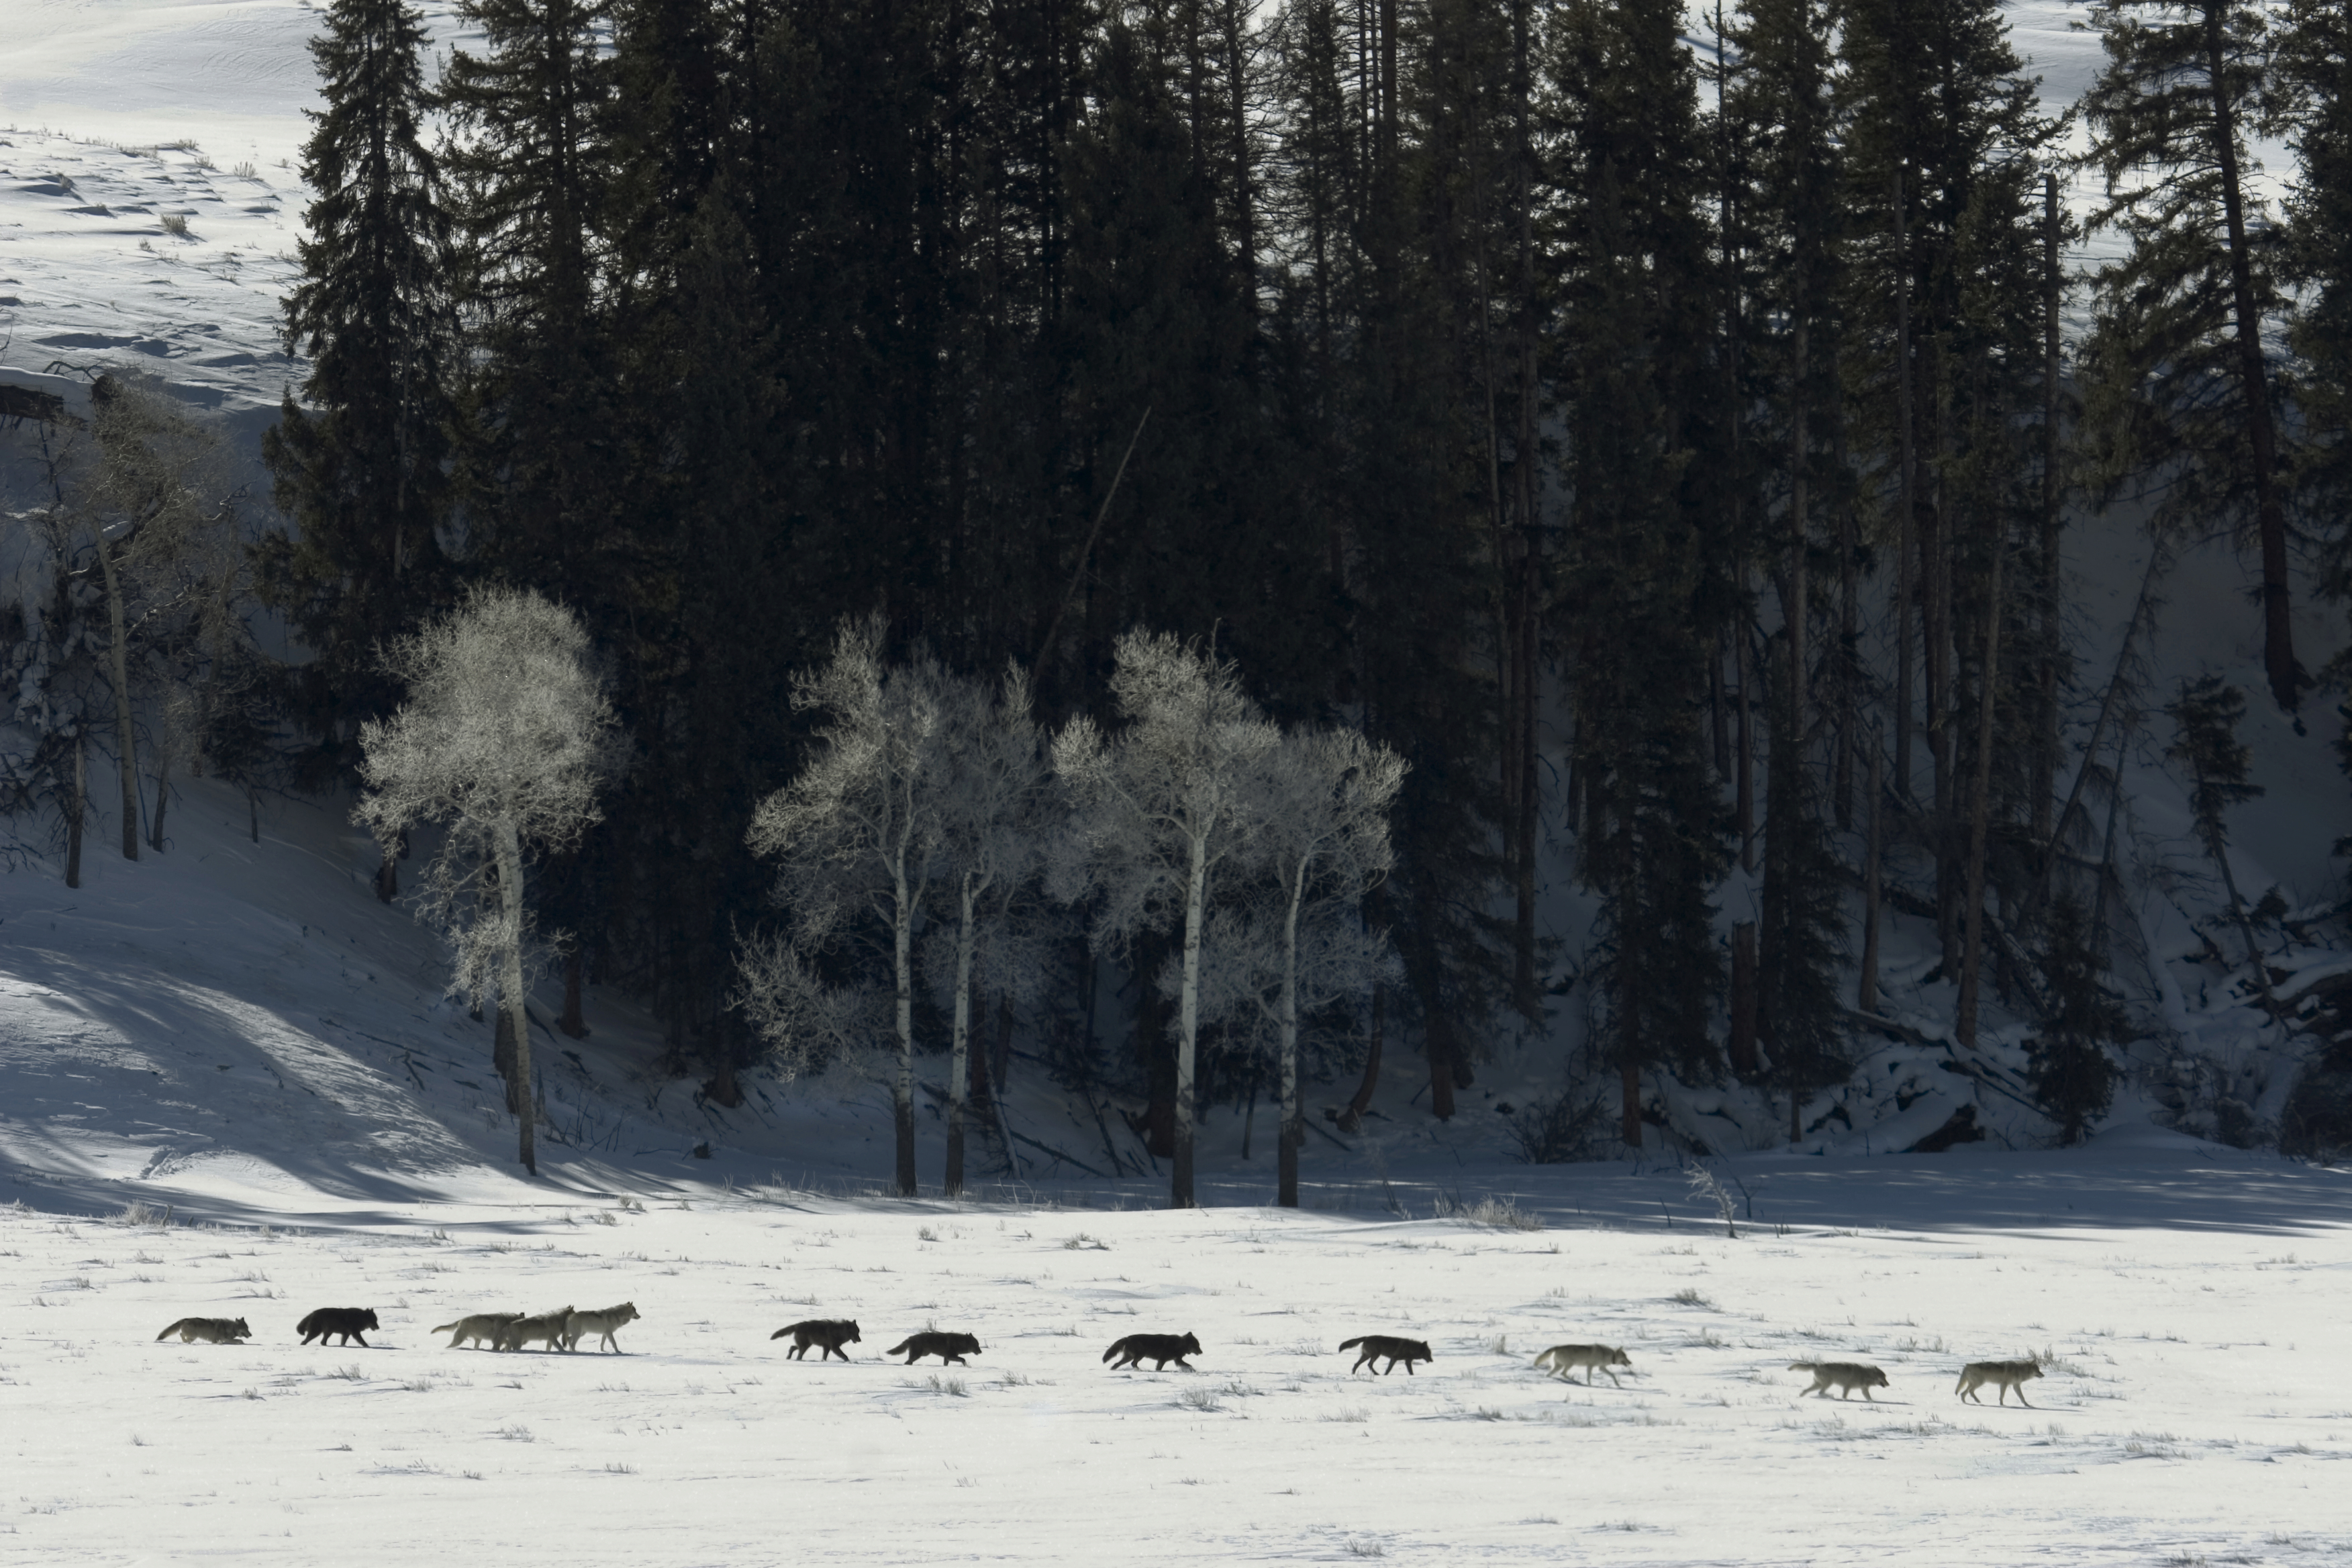 wolf reintroduction to yellowstone park That was the last recorded sighting of a gray wolf in the yellowstone park land   aldo leopold (who advocated the reintroduction of the wolf to yellowstone as.